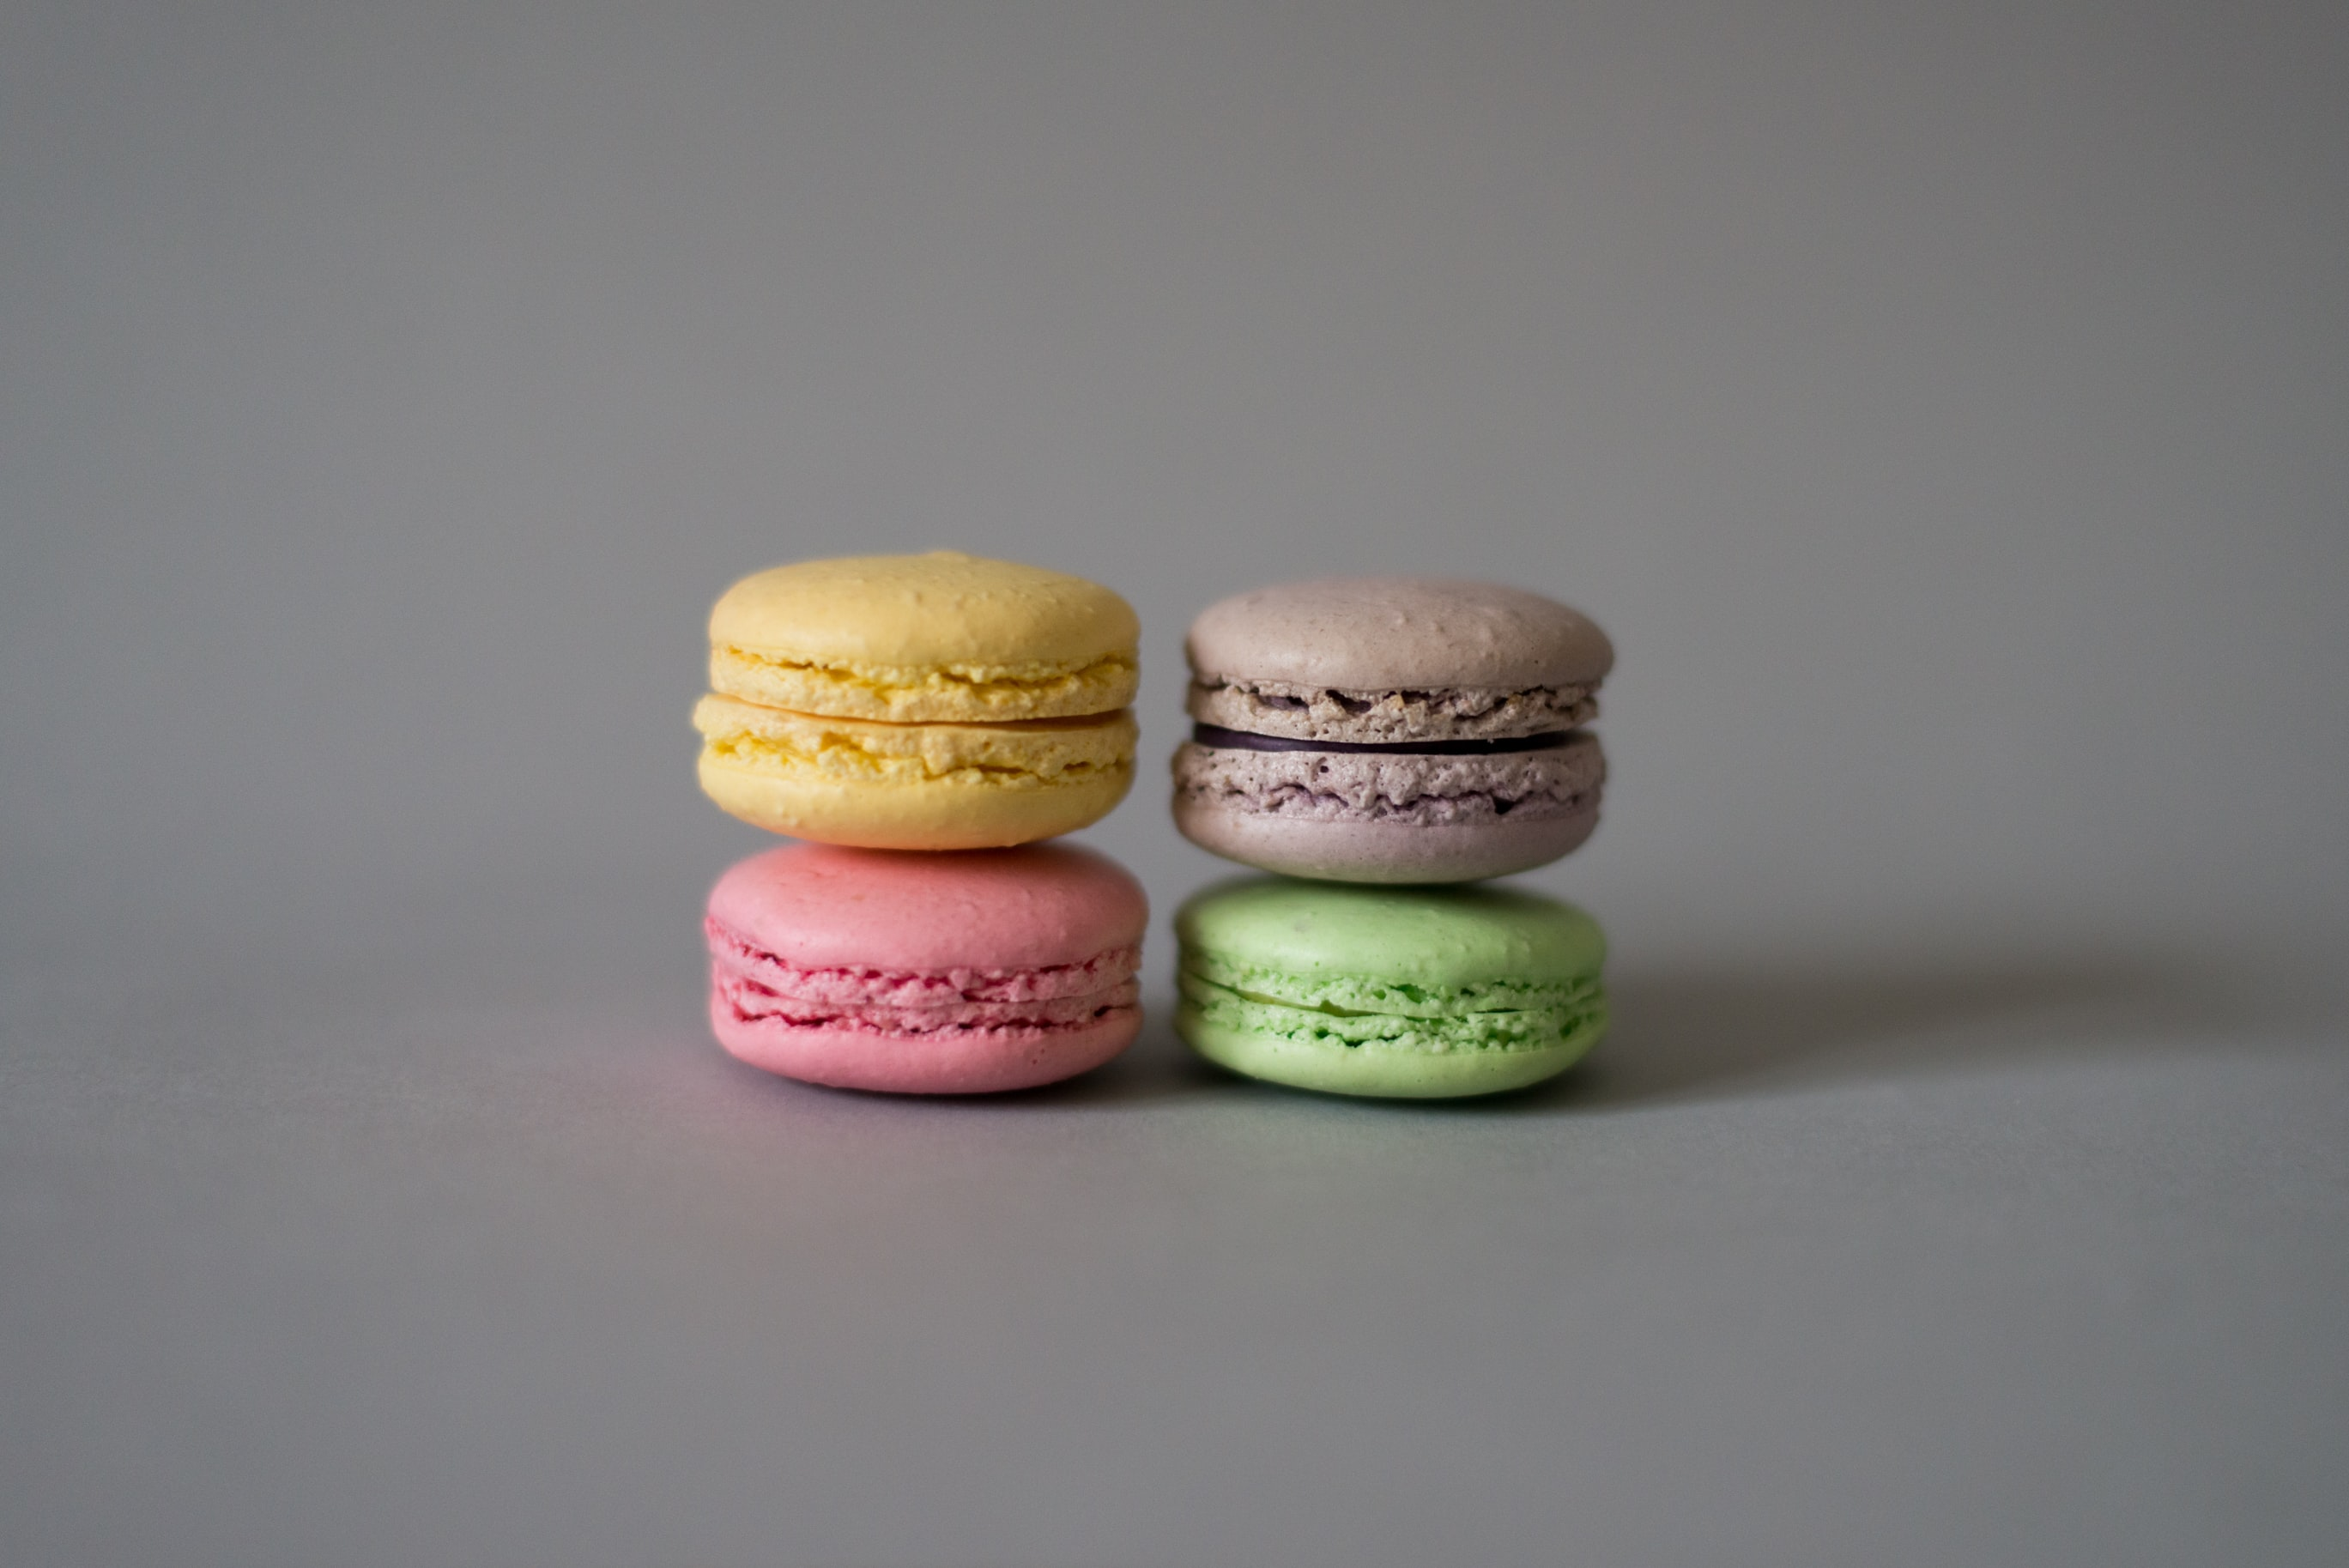 yellow, pink, brown, and green macaroons